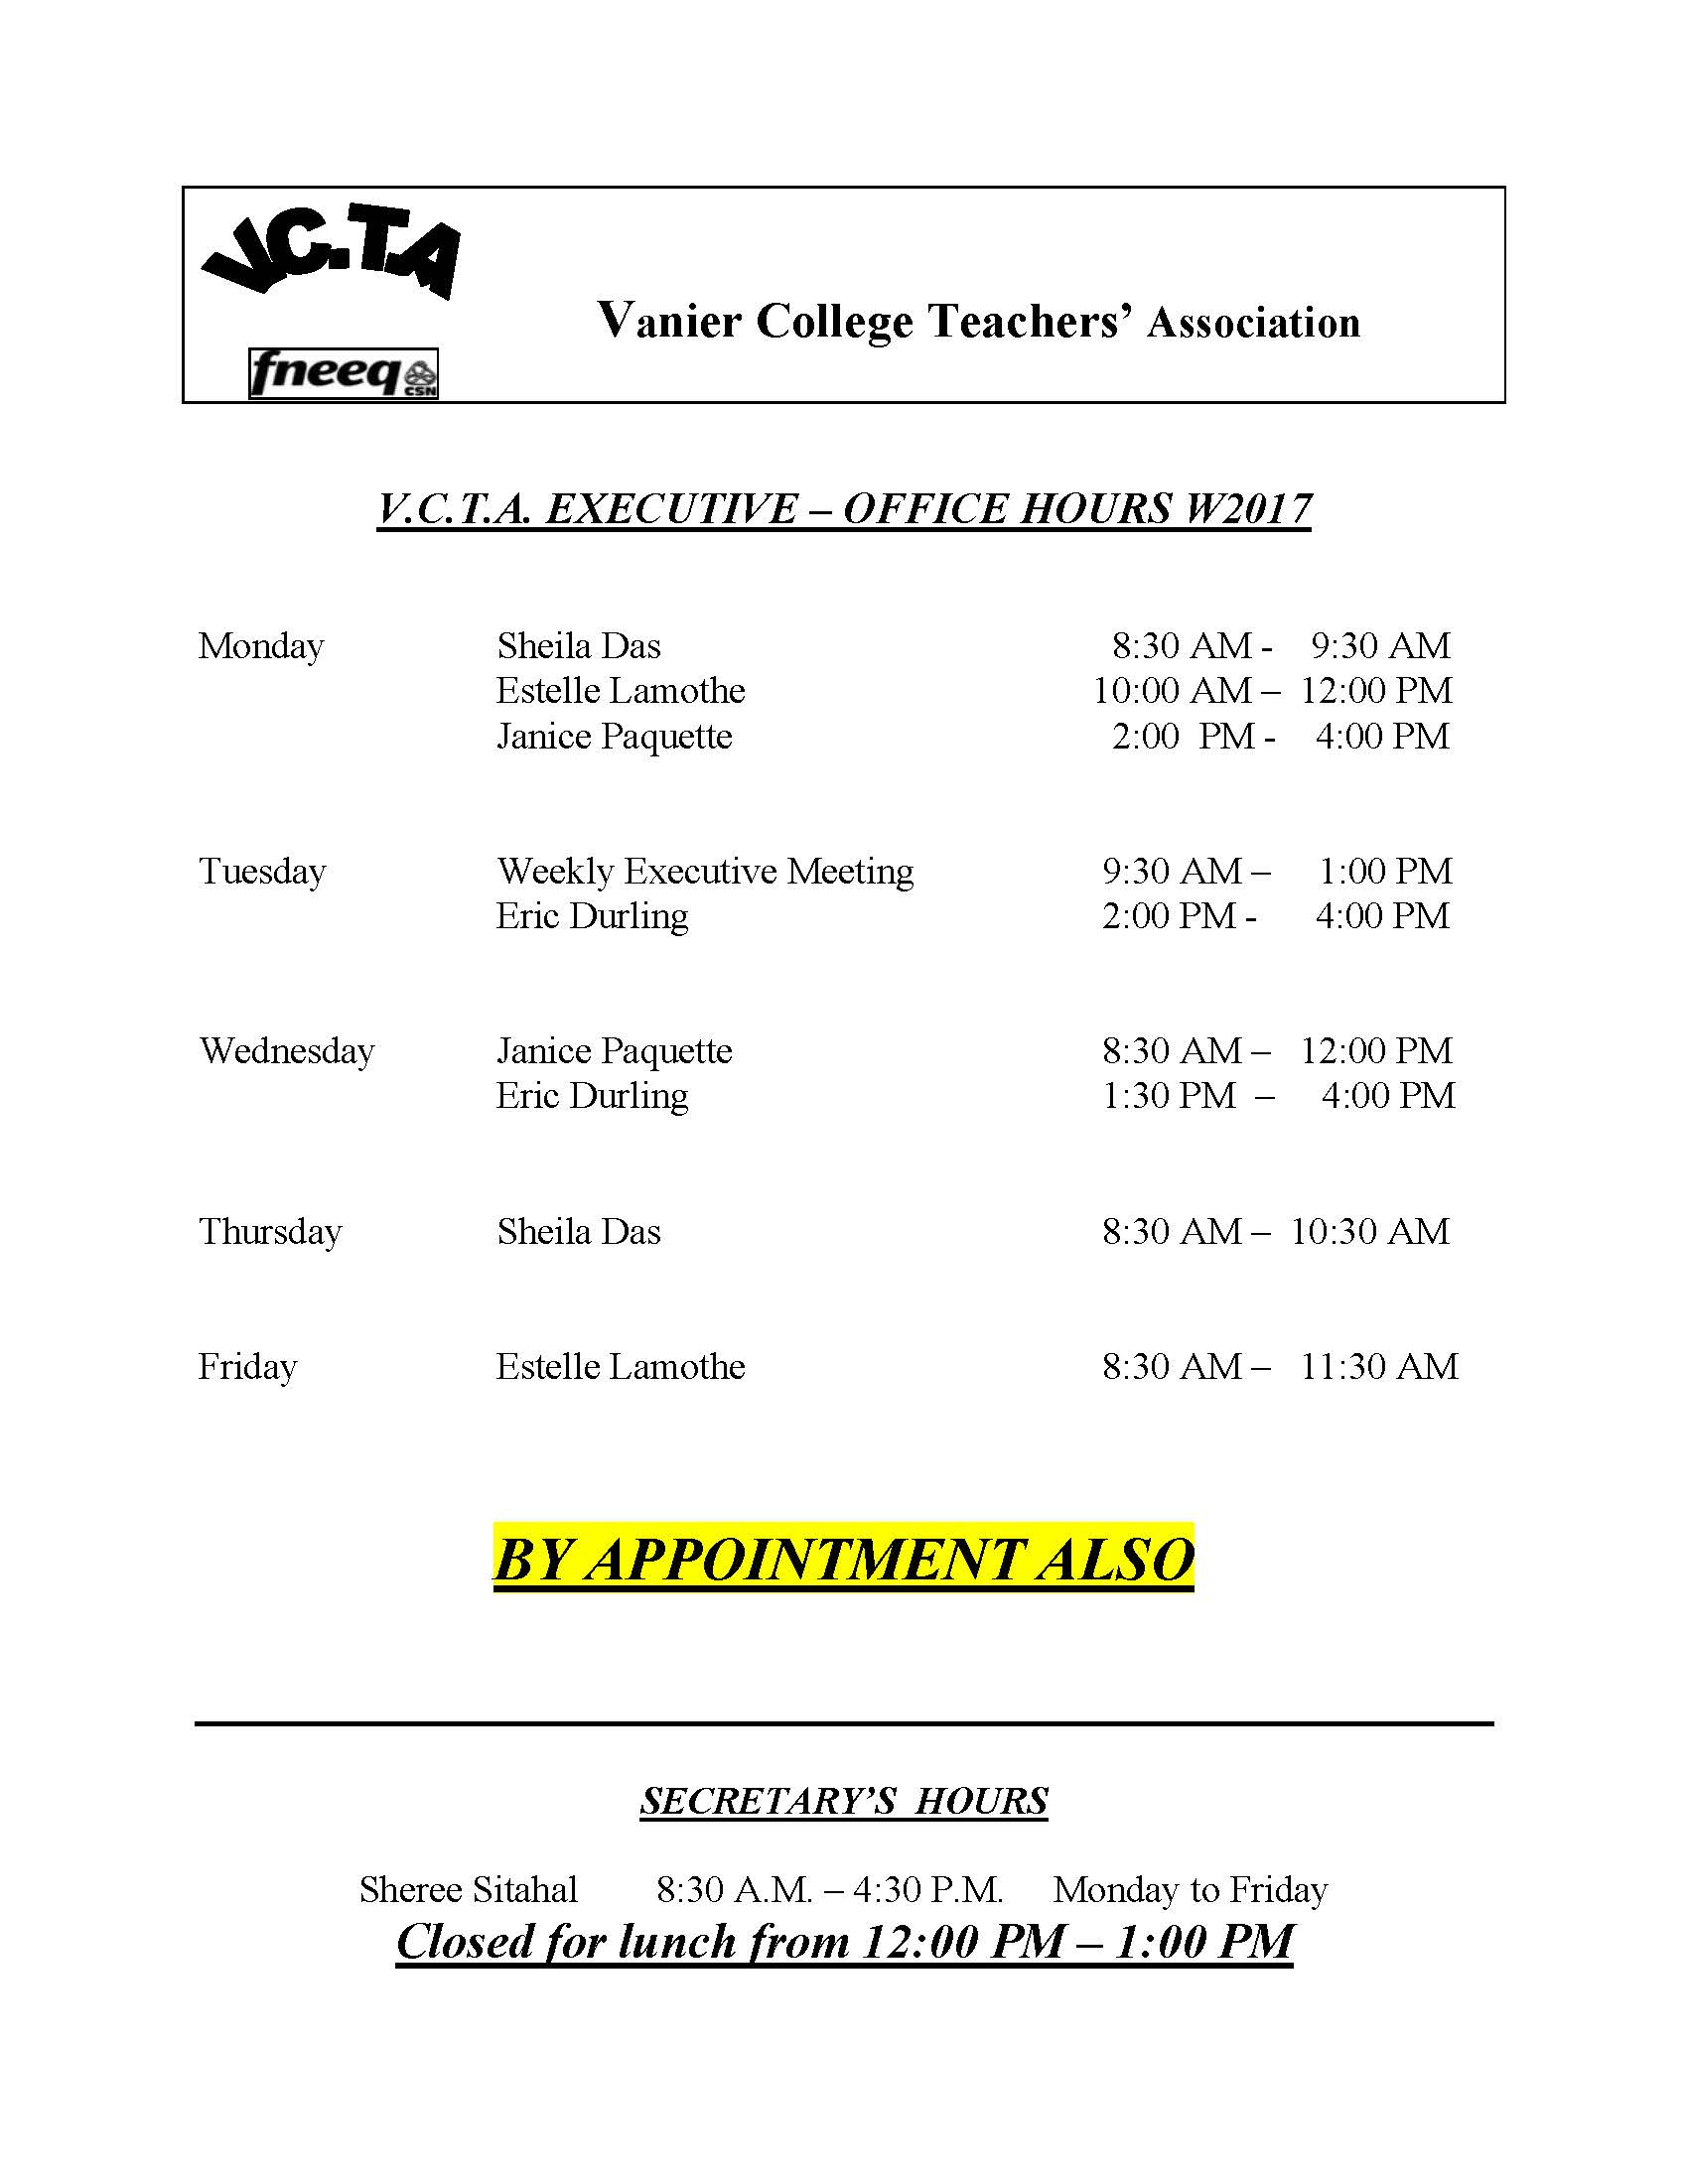 VCTA Exec Office Hours W2017